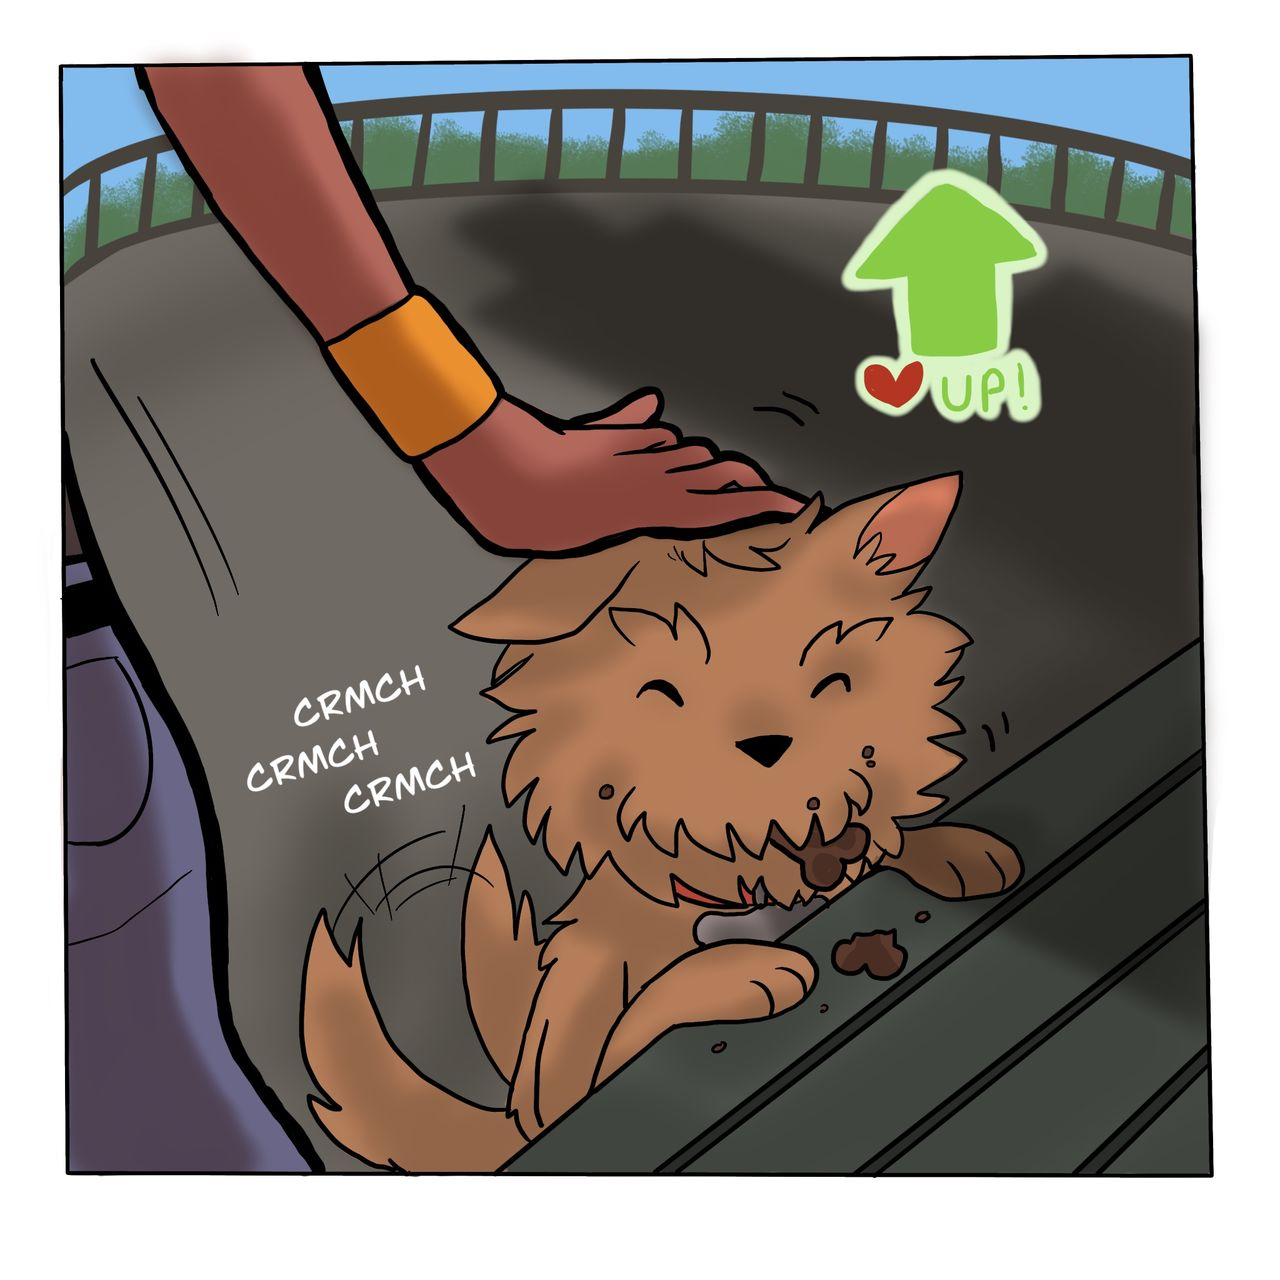 This webcomic shows the dog eating a biscuit and getting a clap on the head. Above his head is a green up arrow with a heart icon next to it, like a videogame.